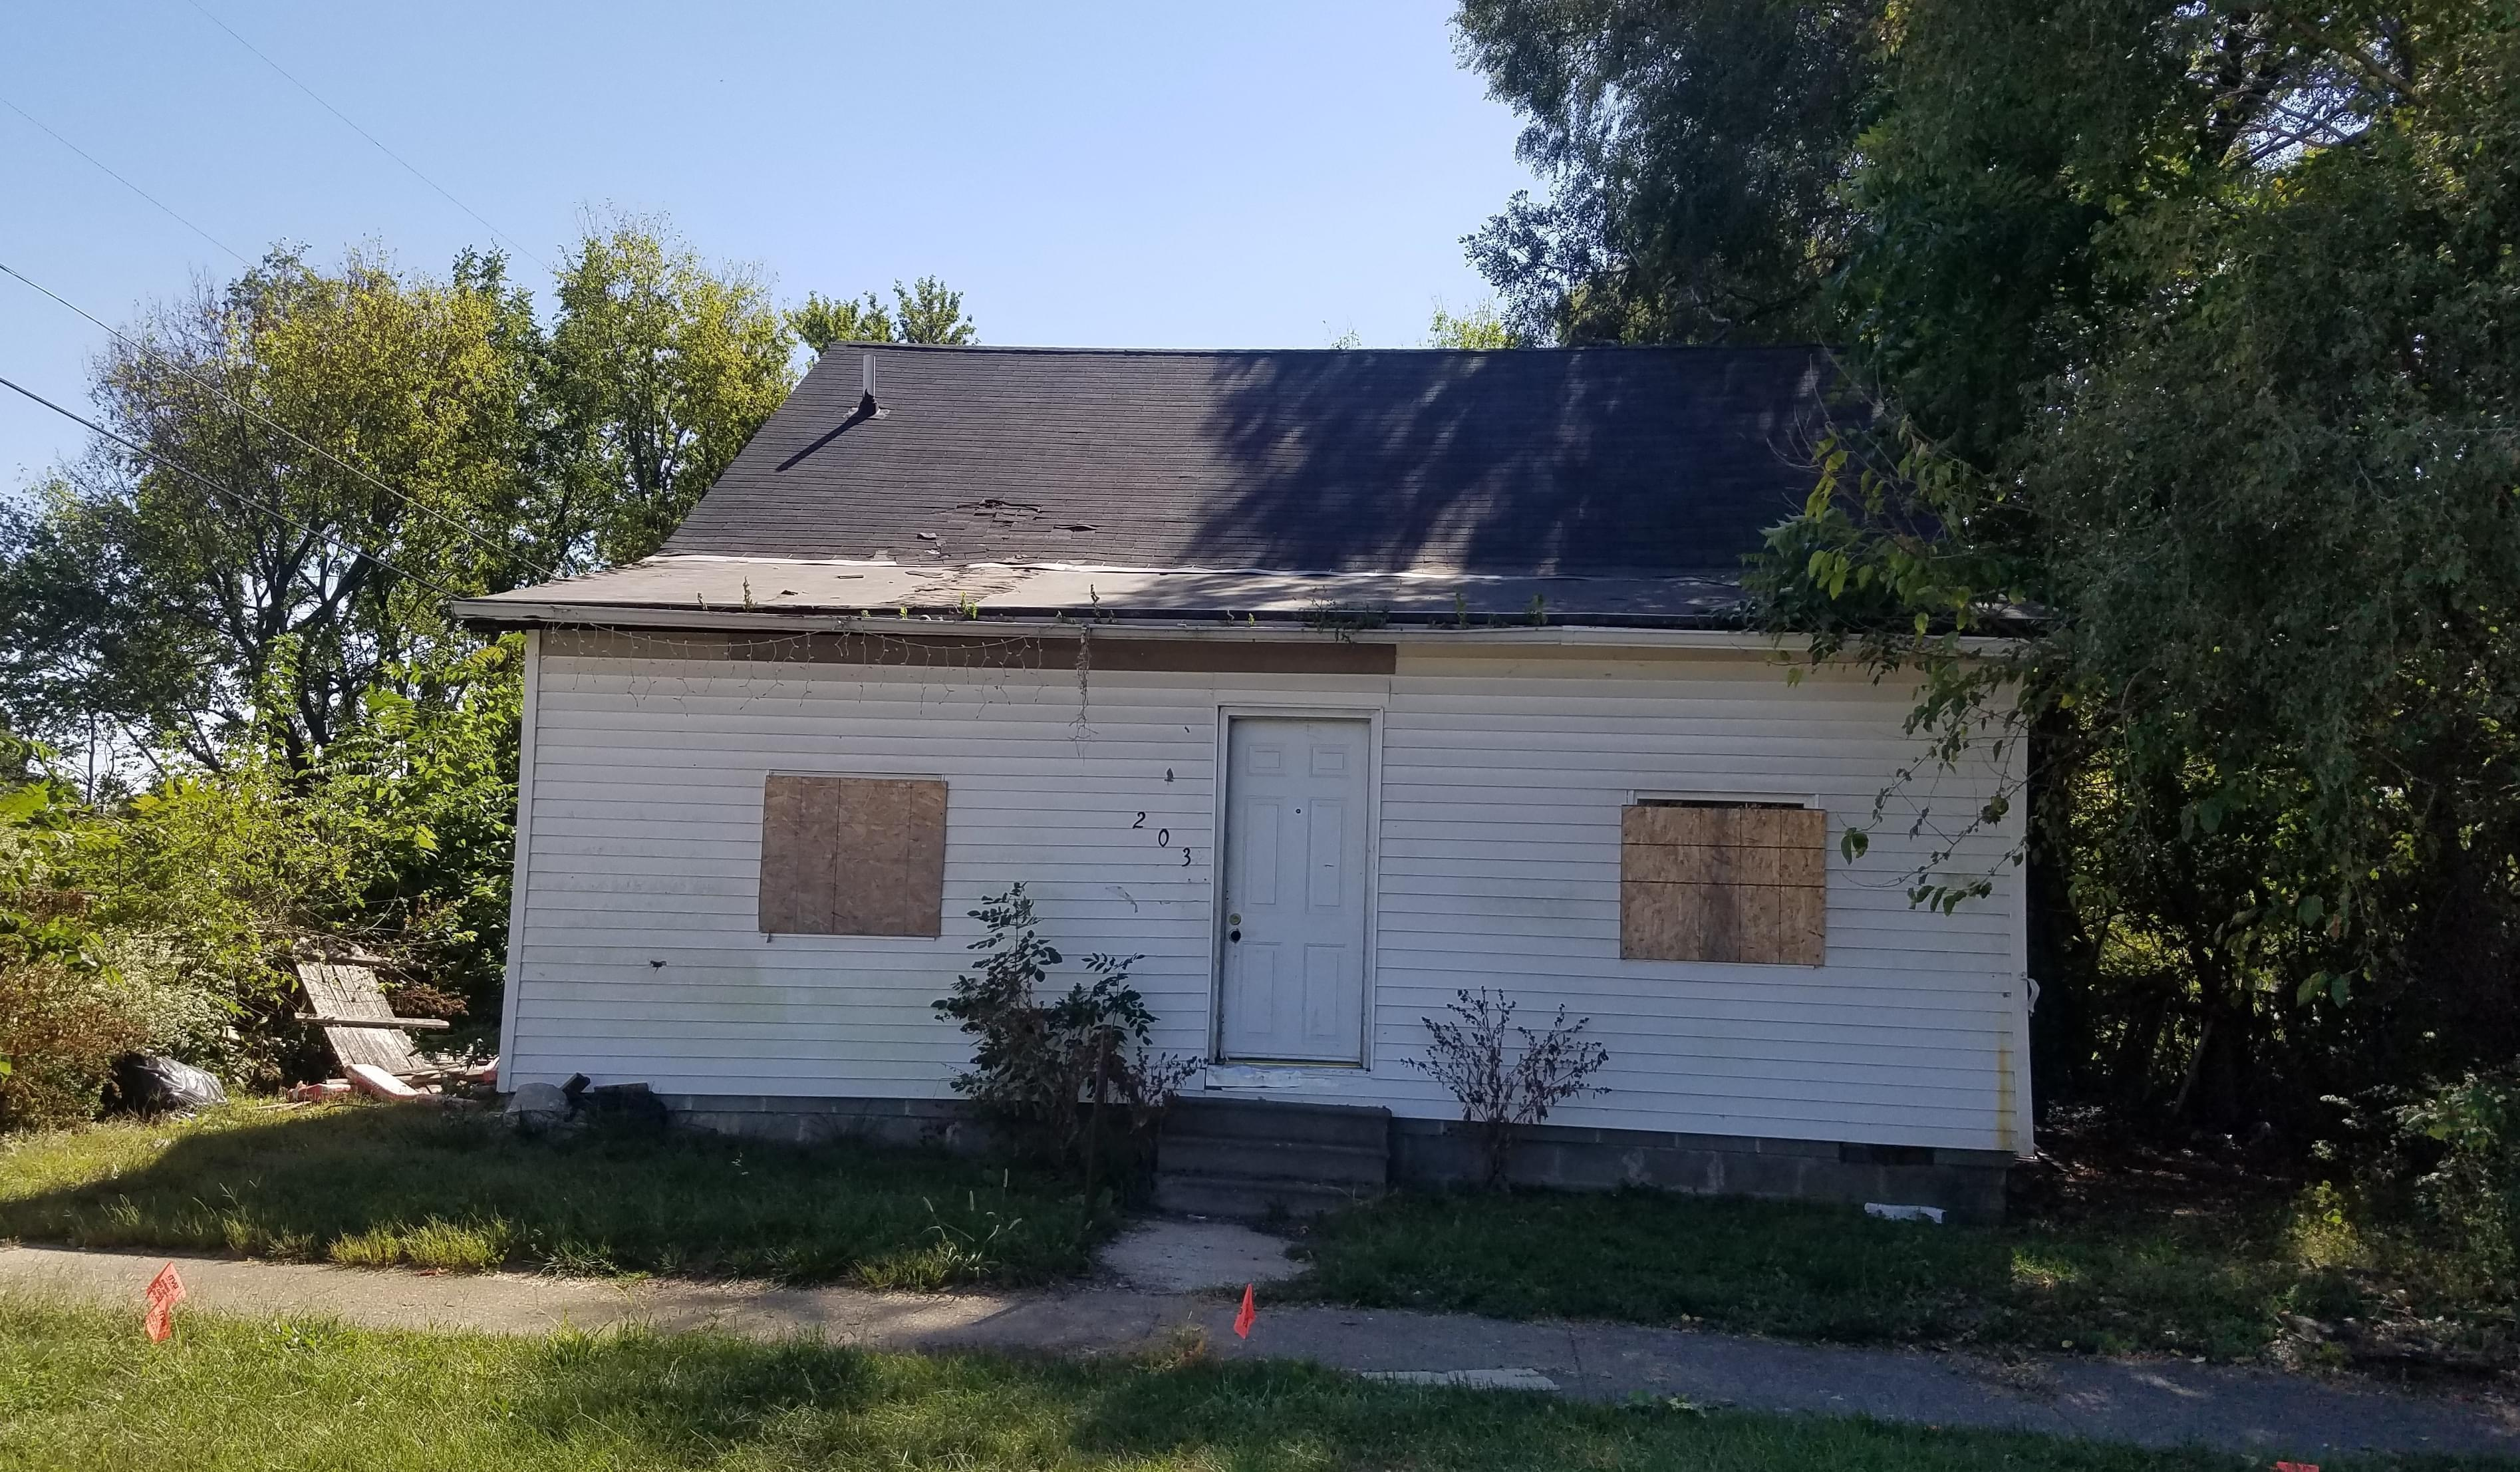 A boarded-up house in Champaign's Bristol Place neighborhood.